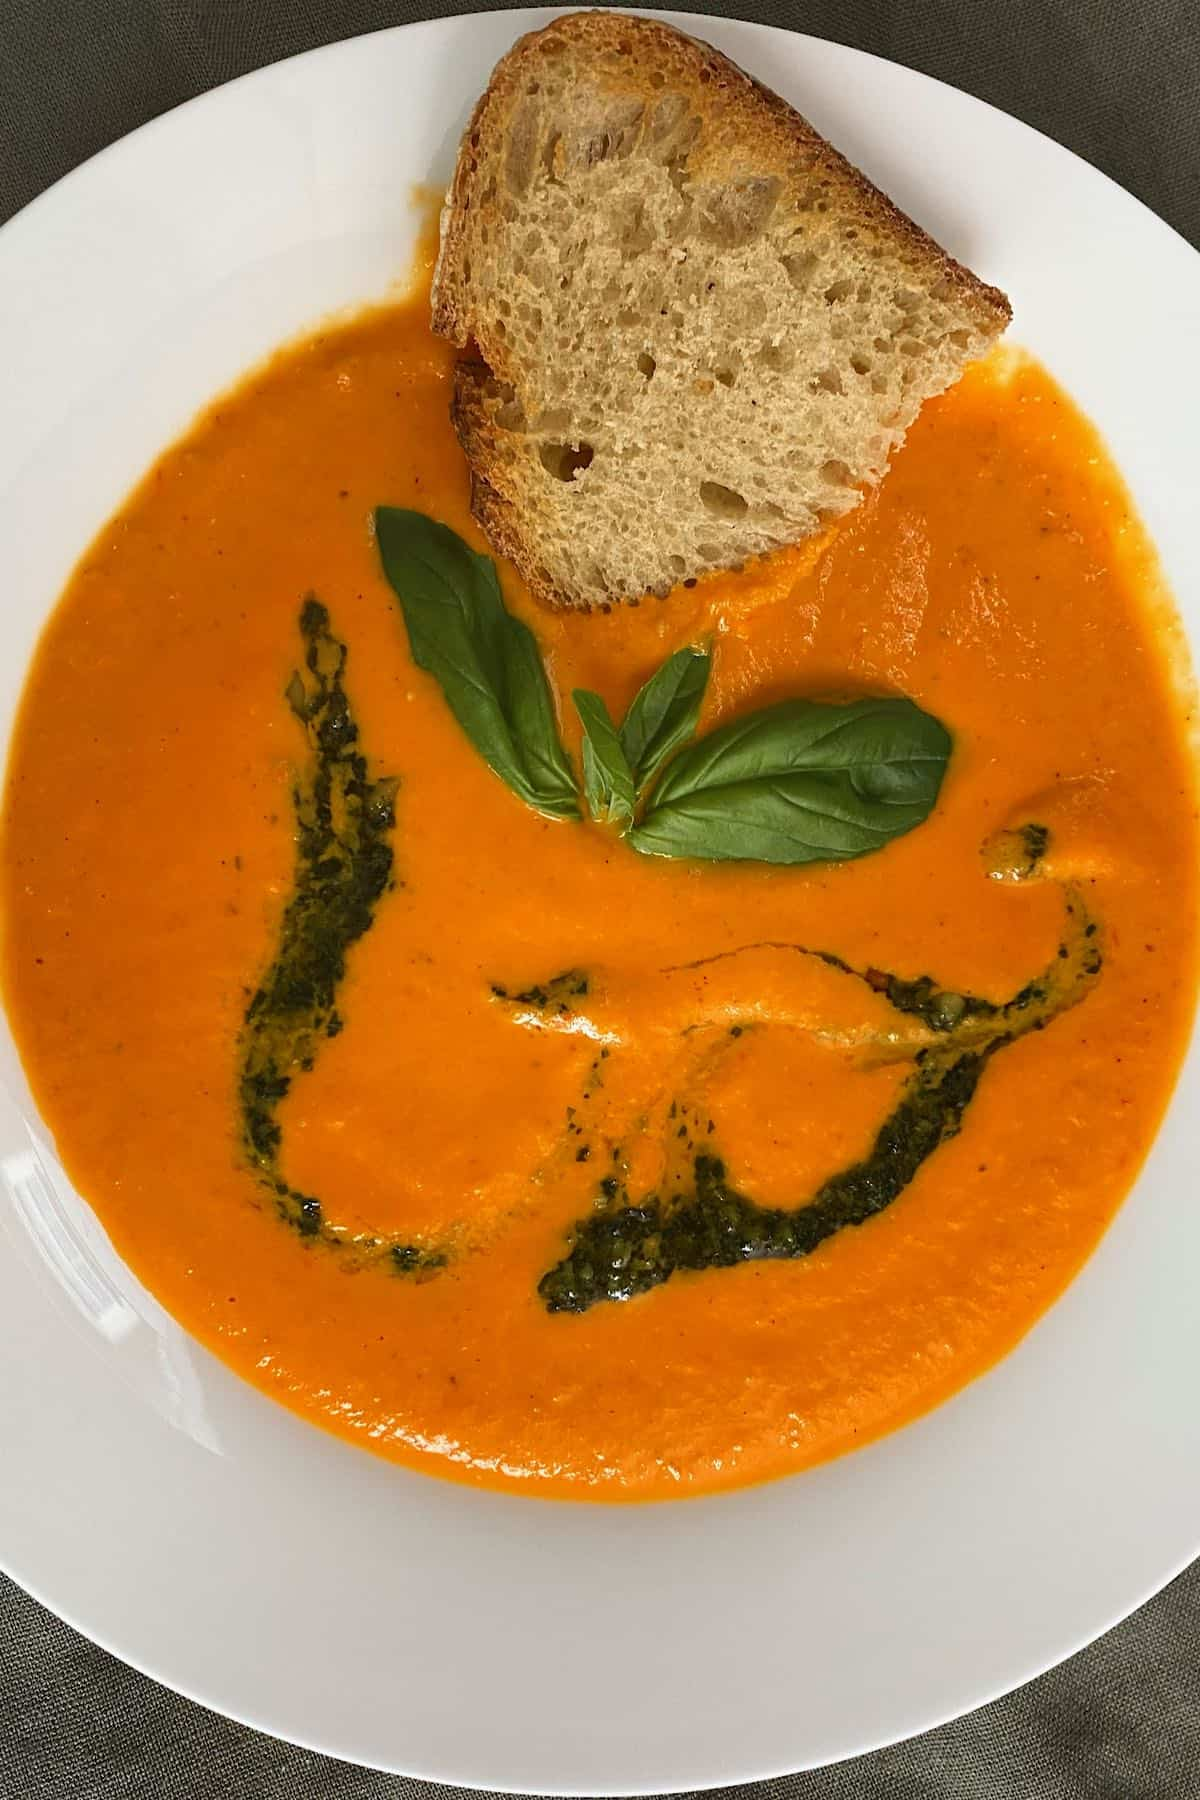 A bowl with tomato soup and a toasted piece of bread being dipping into it